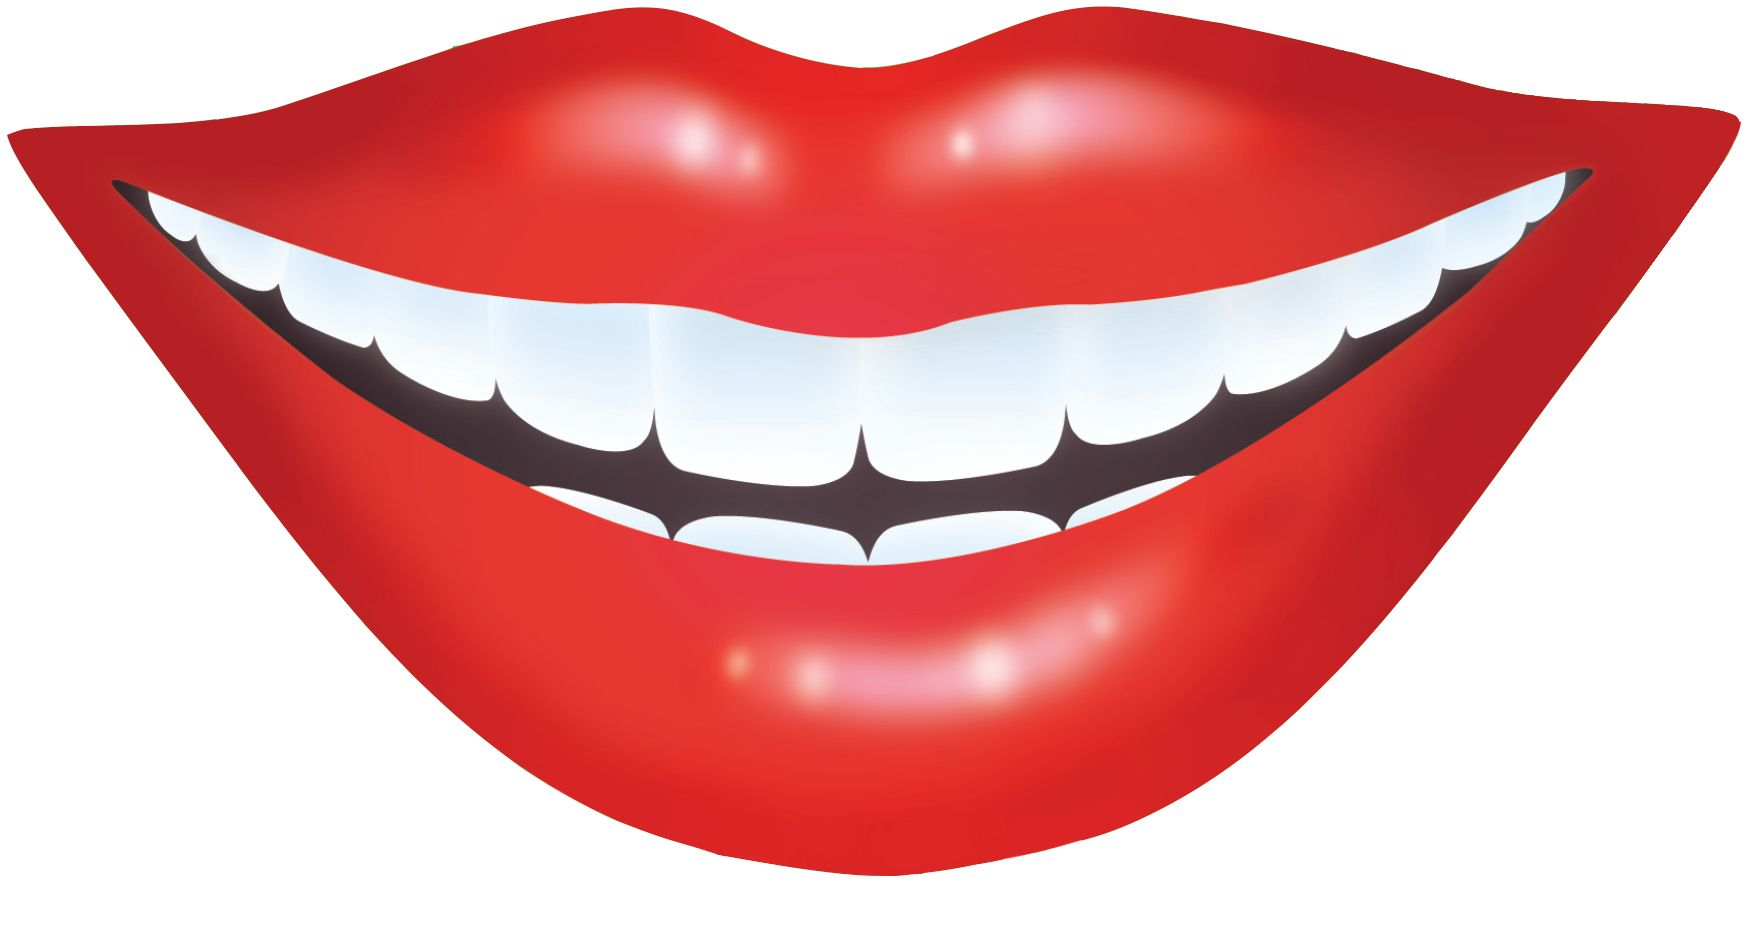 Smiling Lips Clipart.